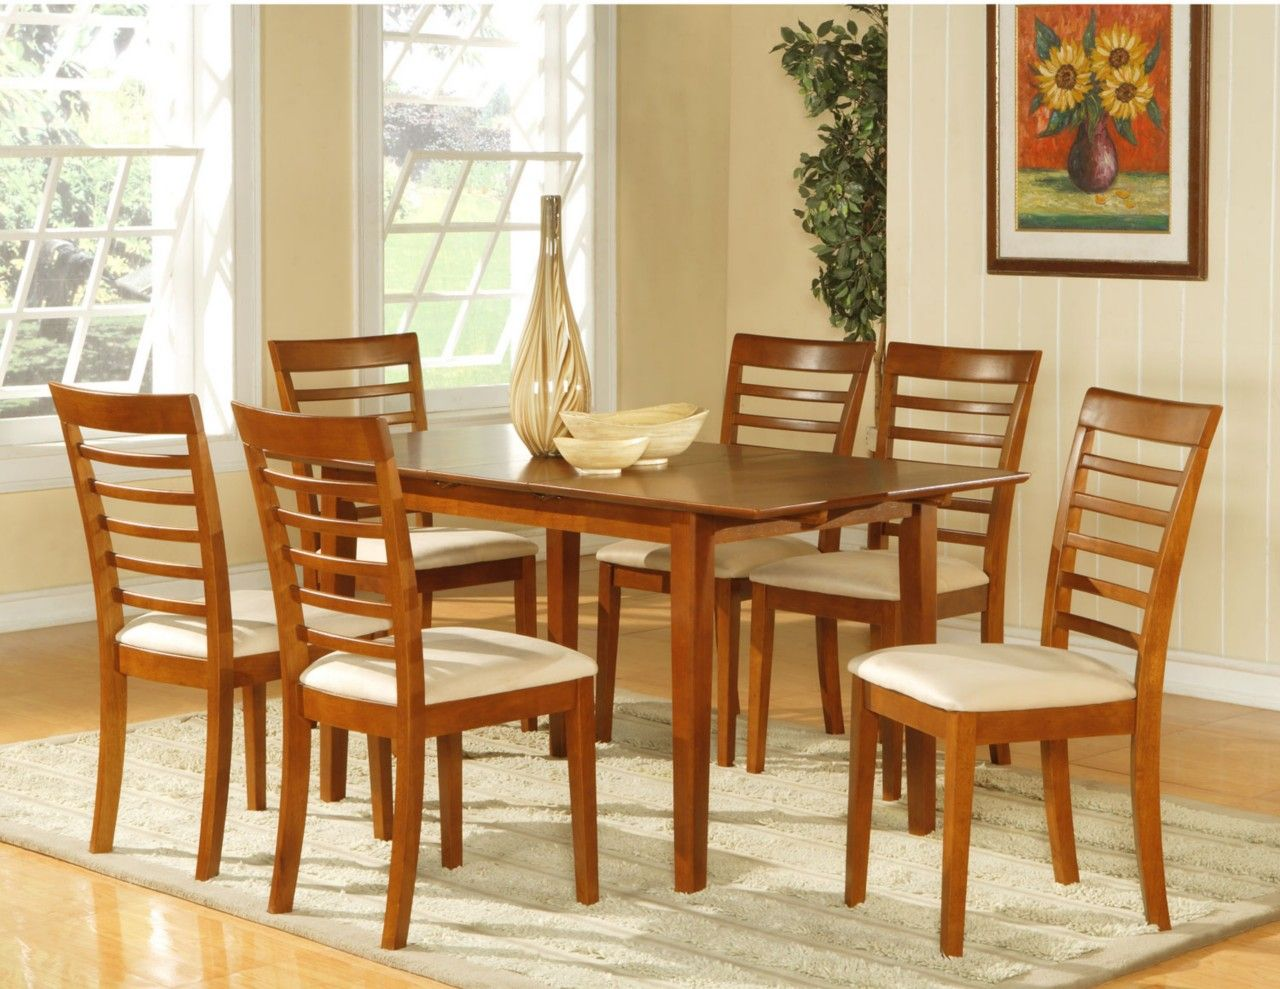 Image result for oak kitchen chair upholstered seat kitchen chairs wooden imports furniture picasso rectangular table and 6 avon upholstered seat chairs saddle brown finish as shown workwithnaturefo